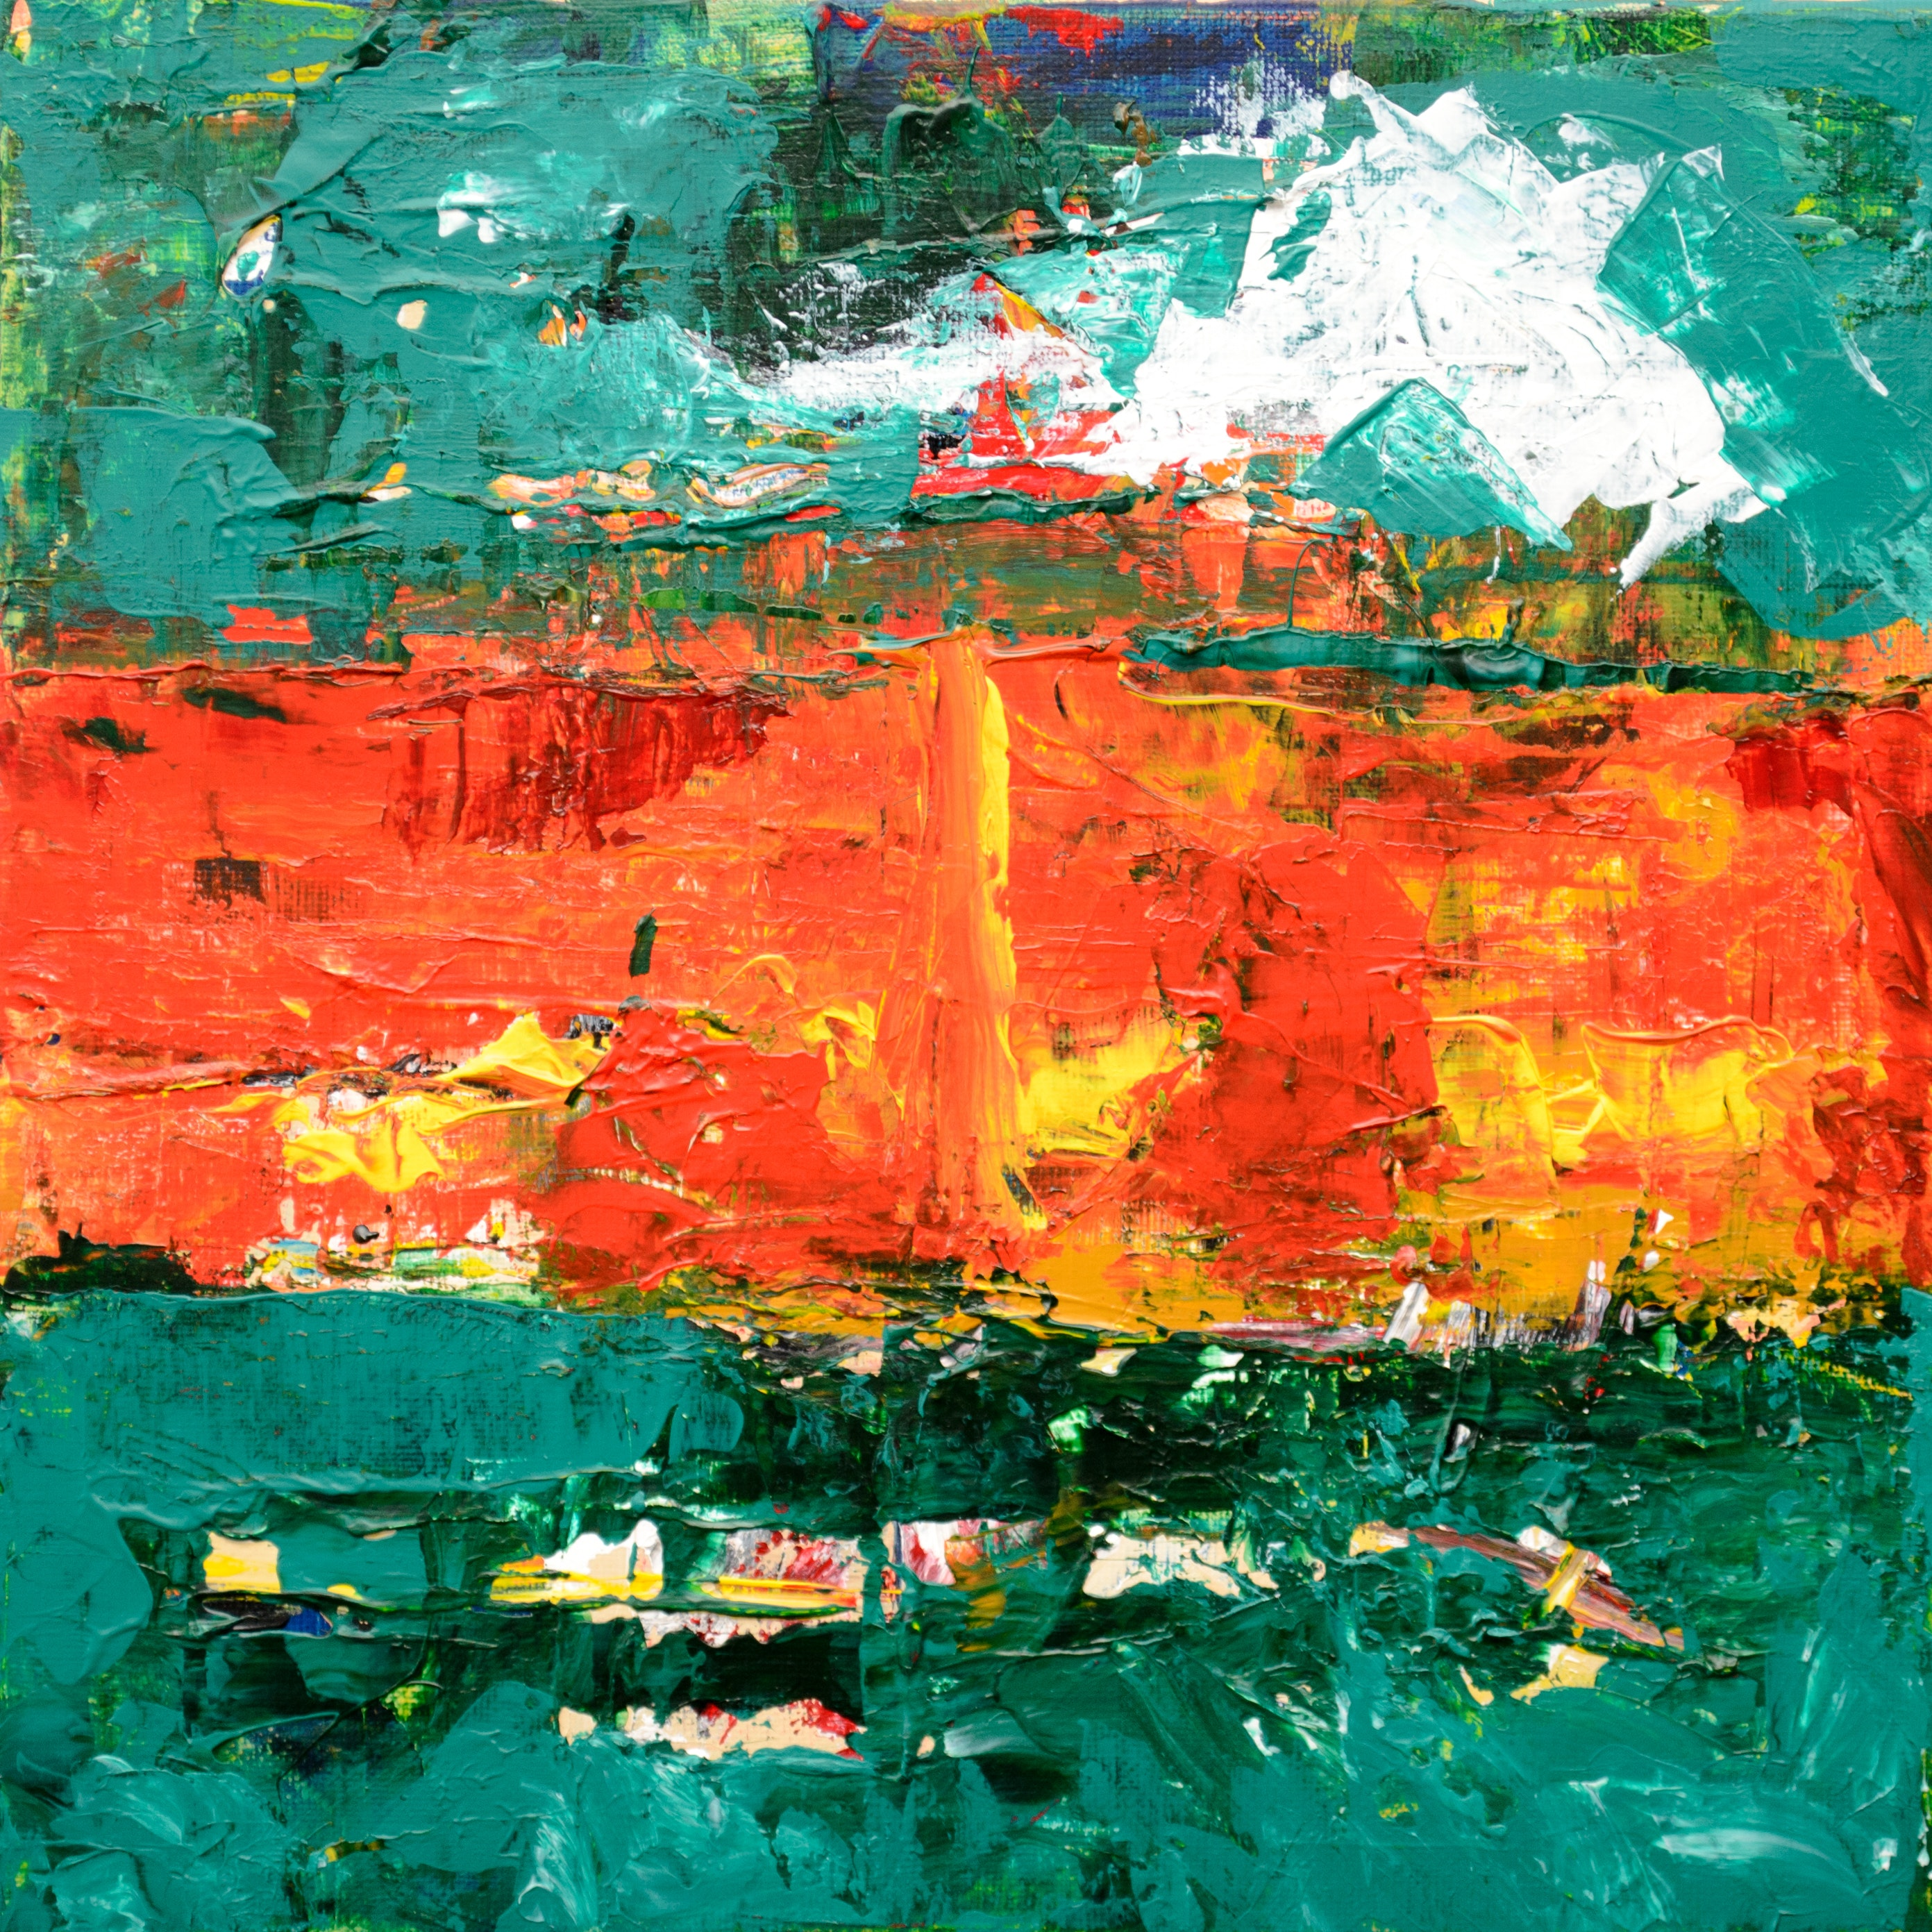 Green Orange And Yellow Abstract Painting Free Stock Photo